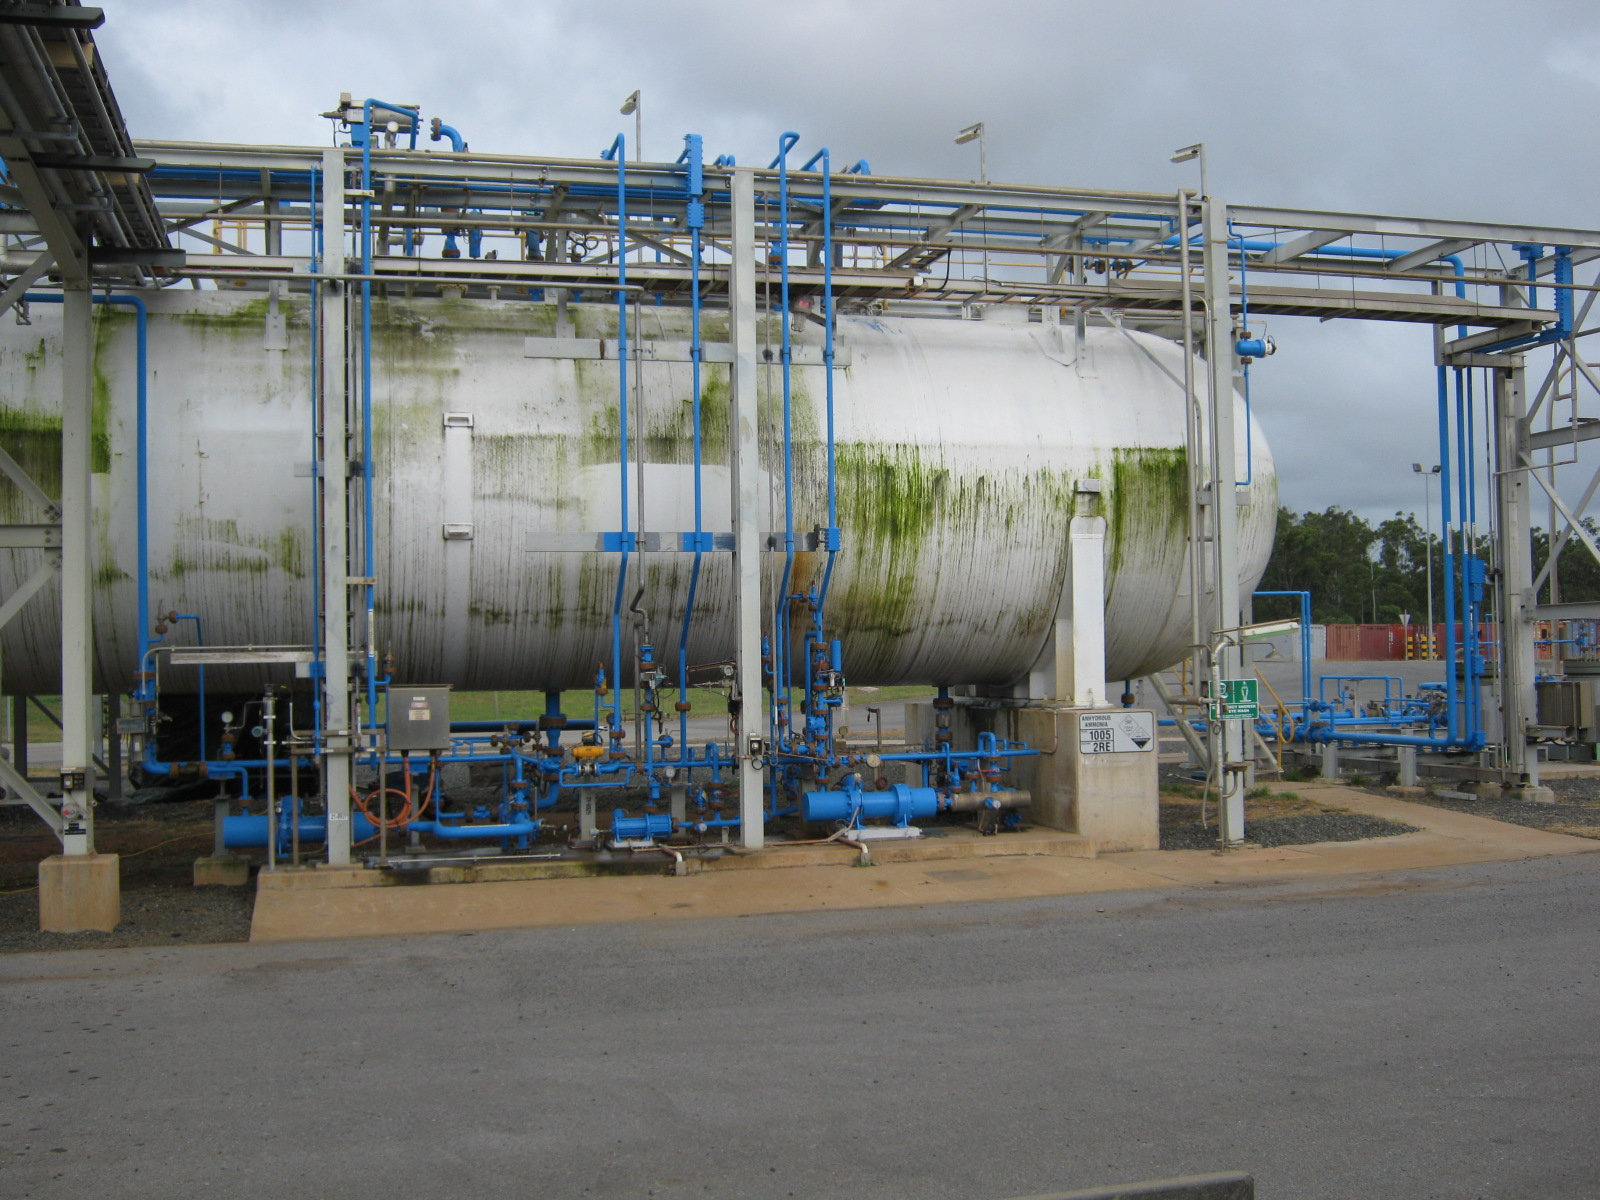 Ammonia pipes protected by Chemco